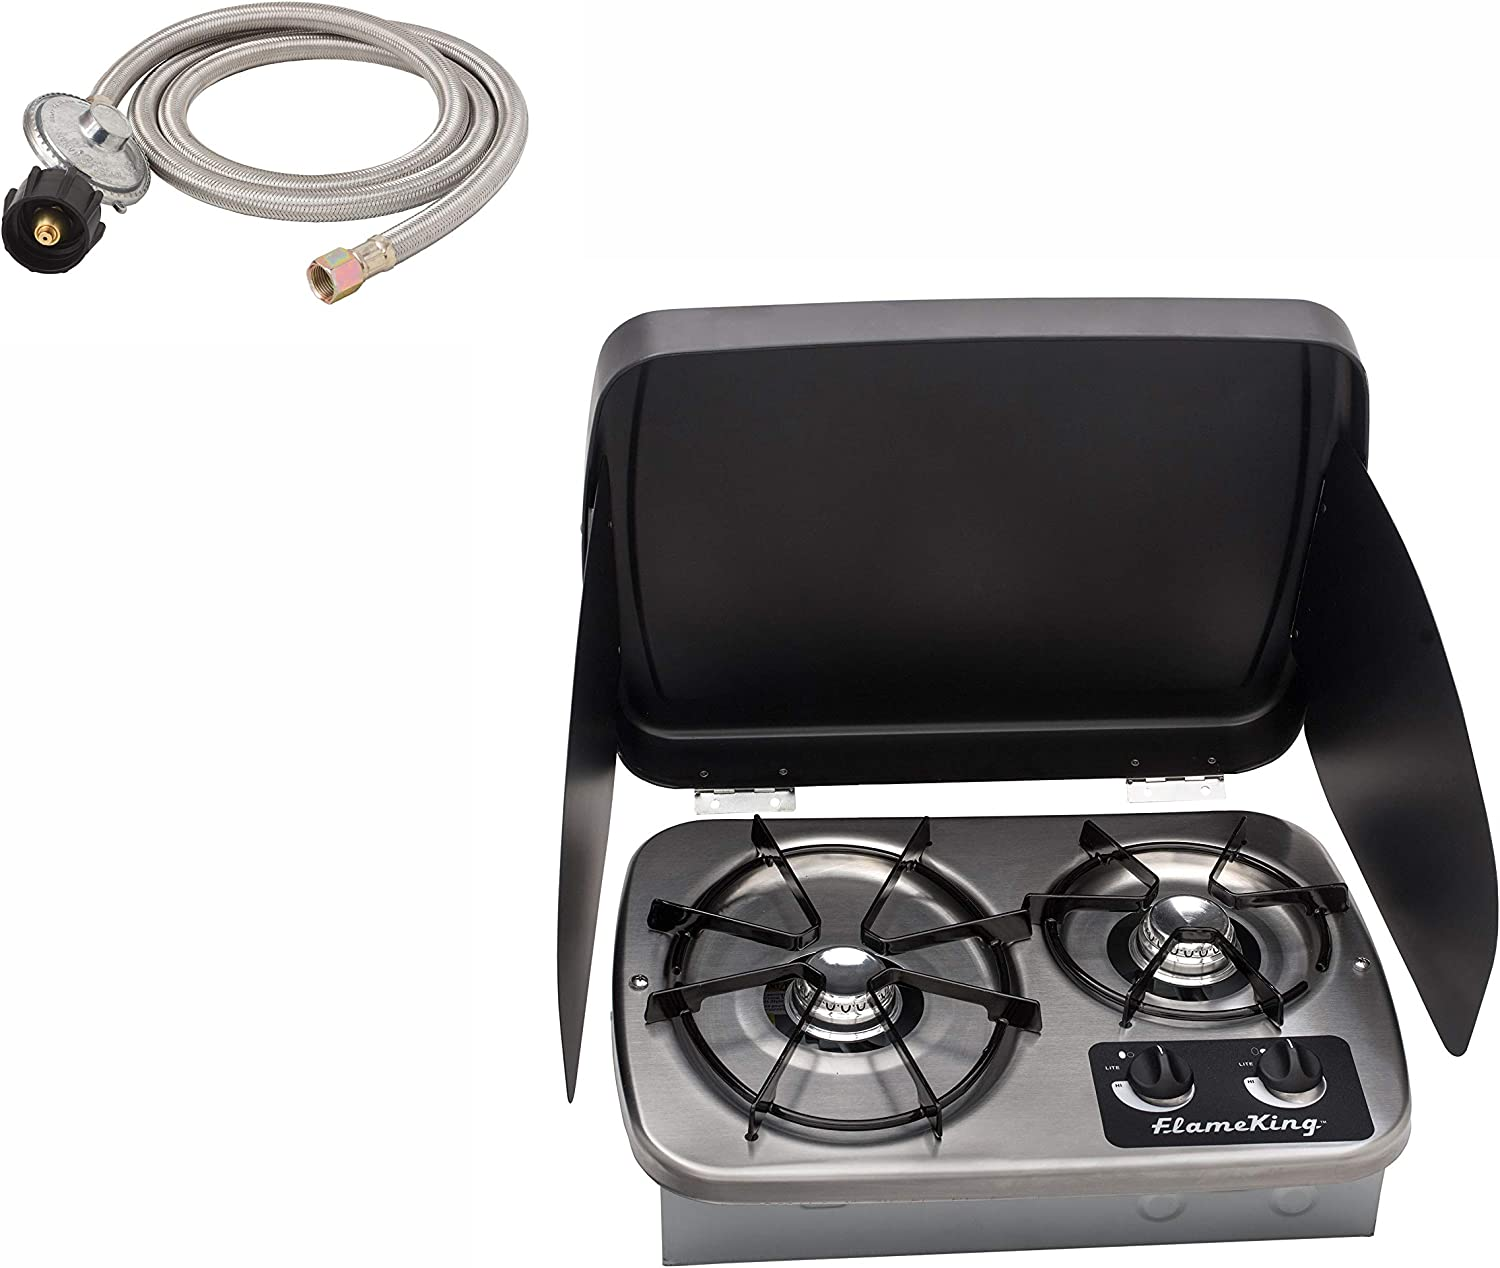 Flame King Max 64% OFF YSNHT600 2 Burner Stove Cooktop Built-In Propane RV online shop